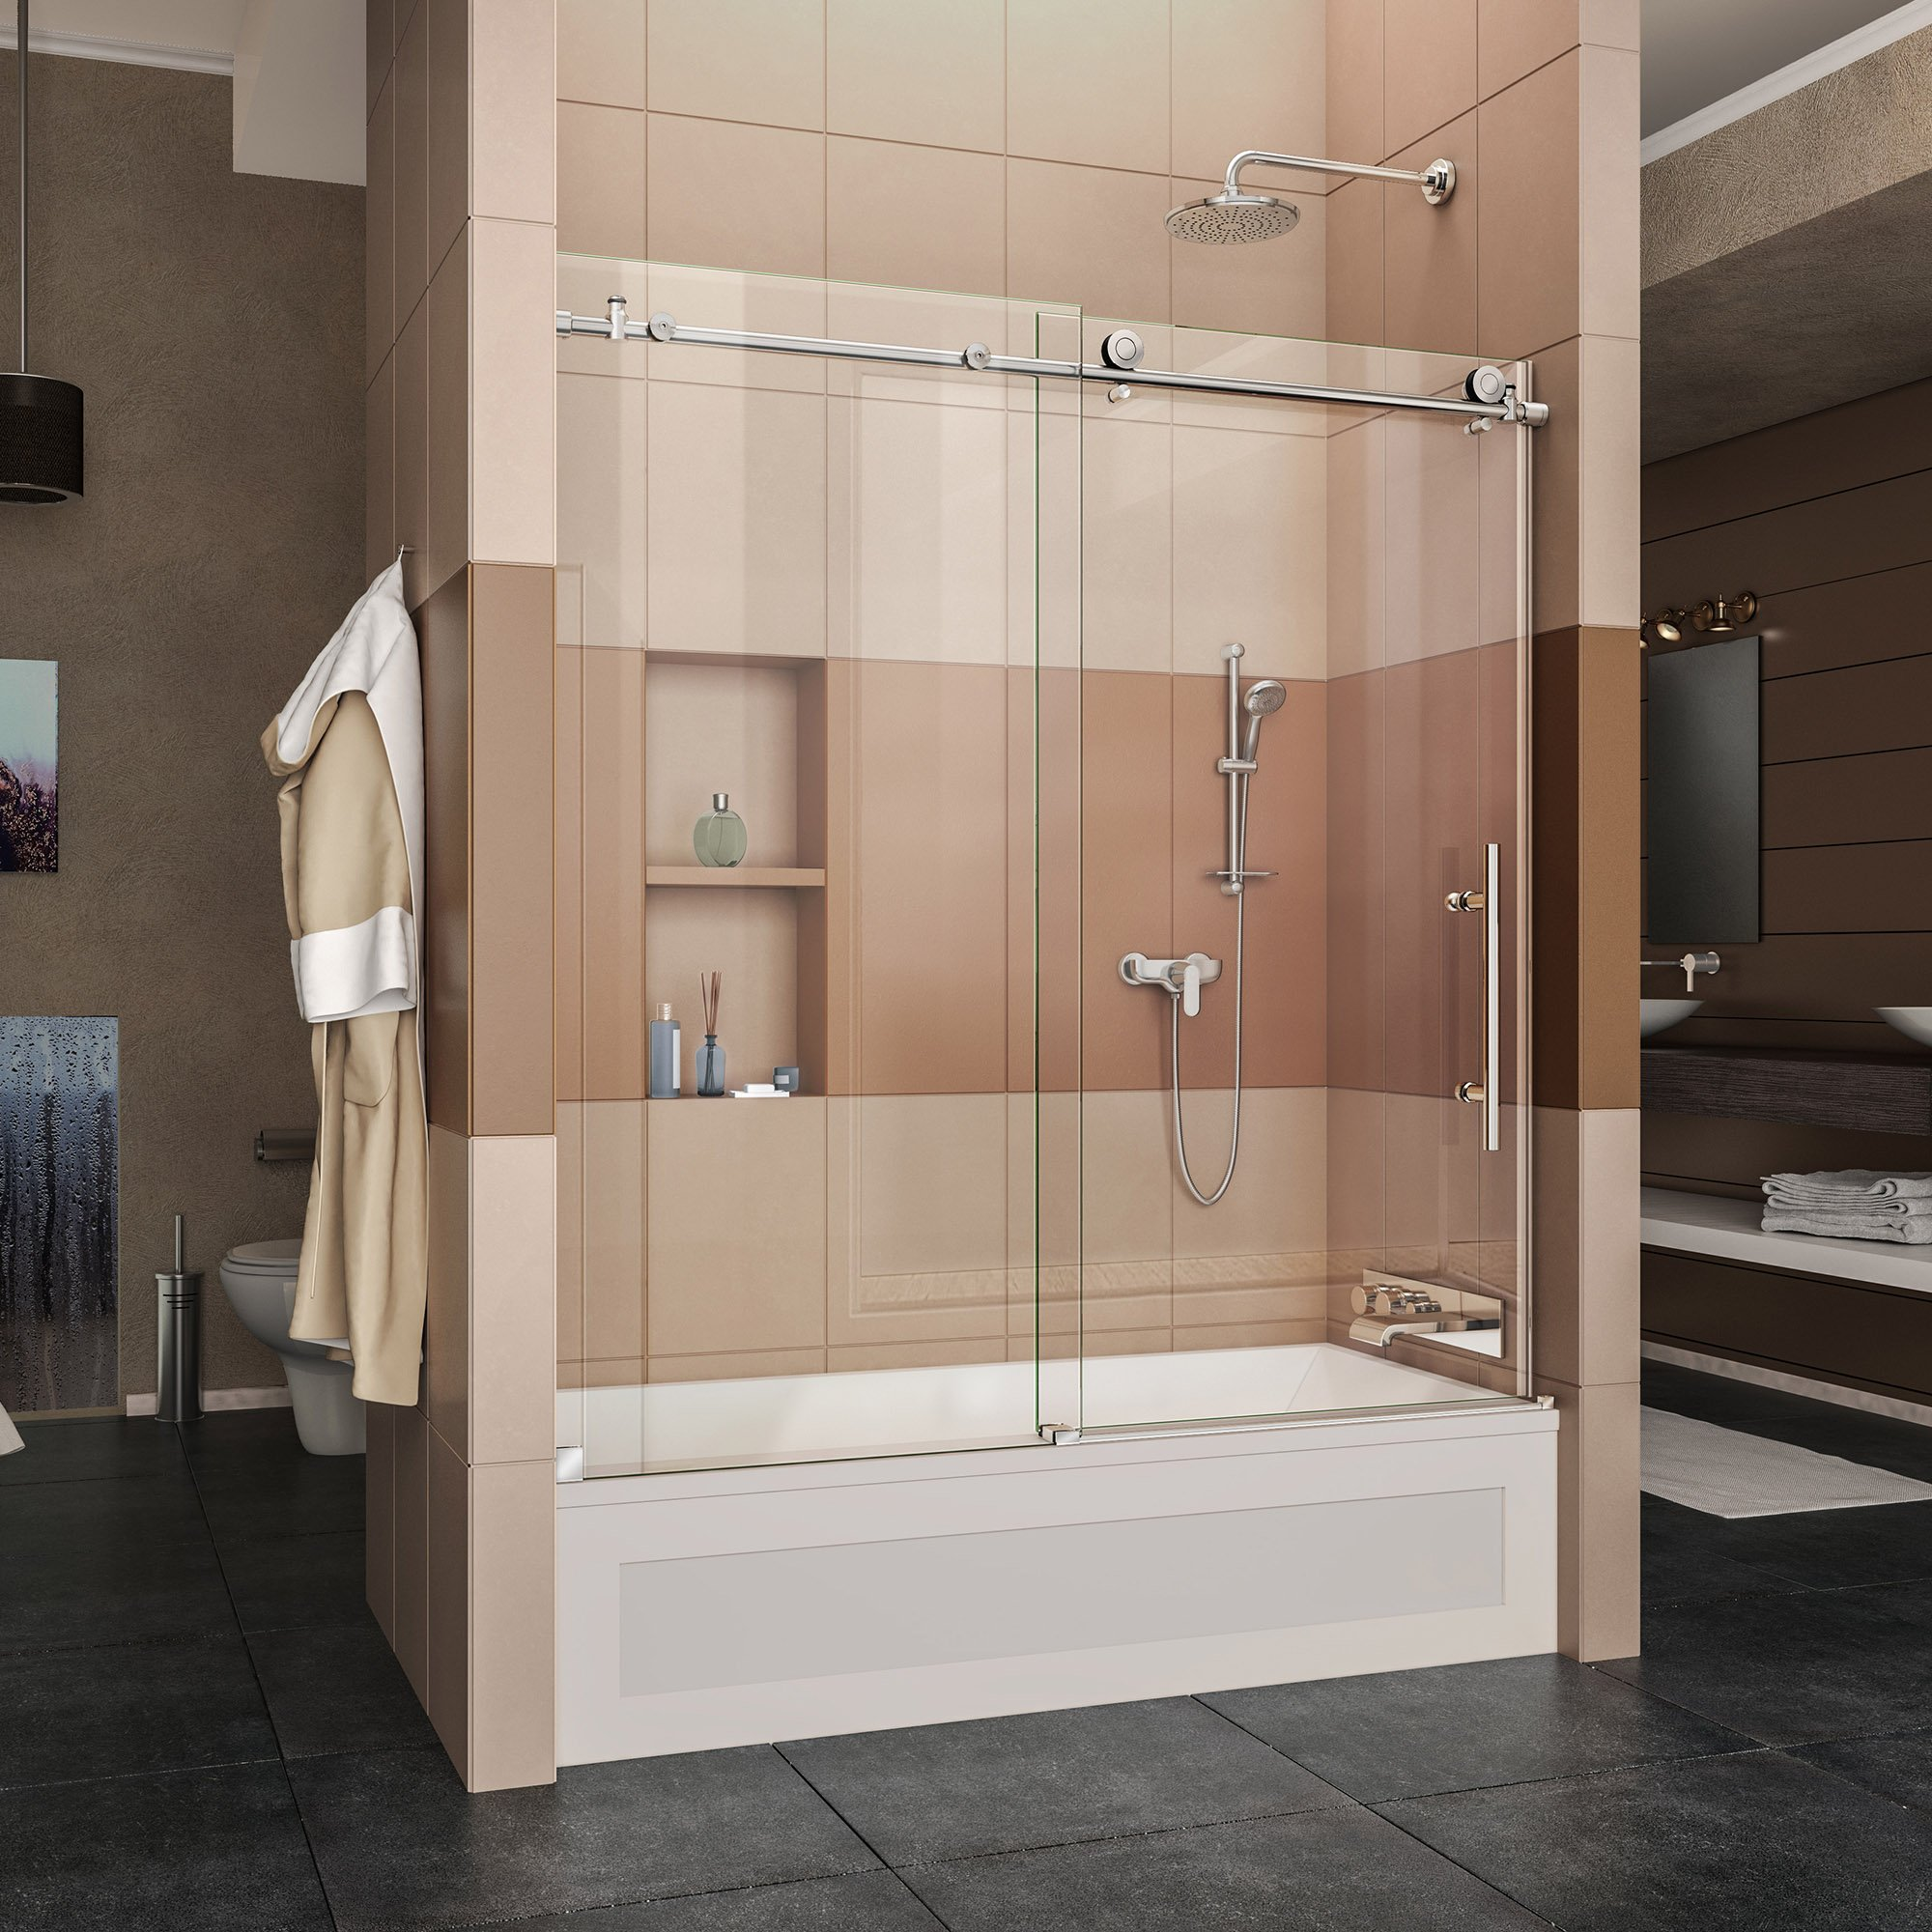 DreamLine Enigma-X 56-59 in. Width, Frameless Sliding Tub Door, 3/8'' Glass, Polished Stainless Steel Finish